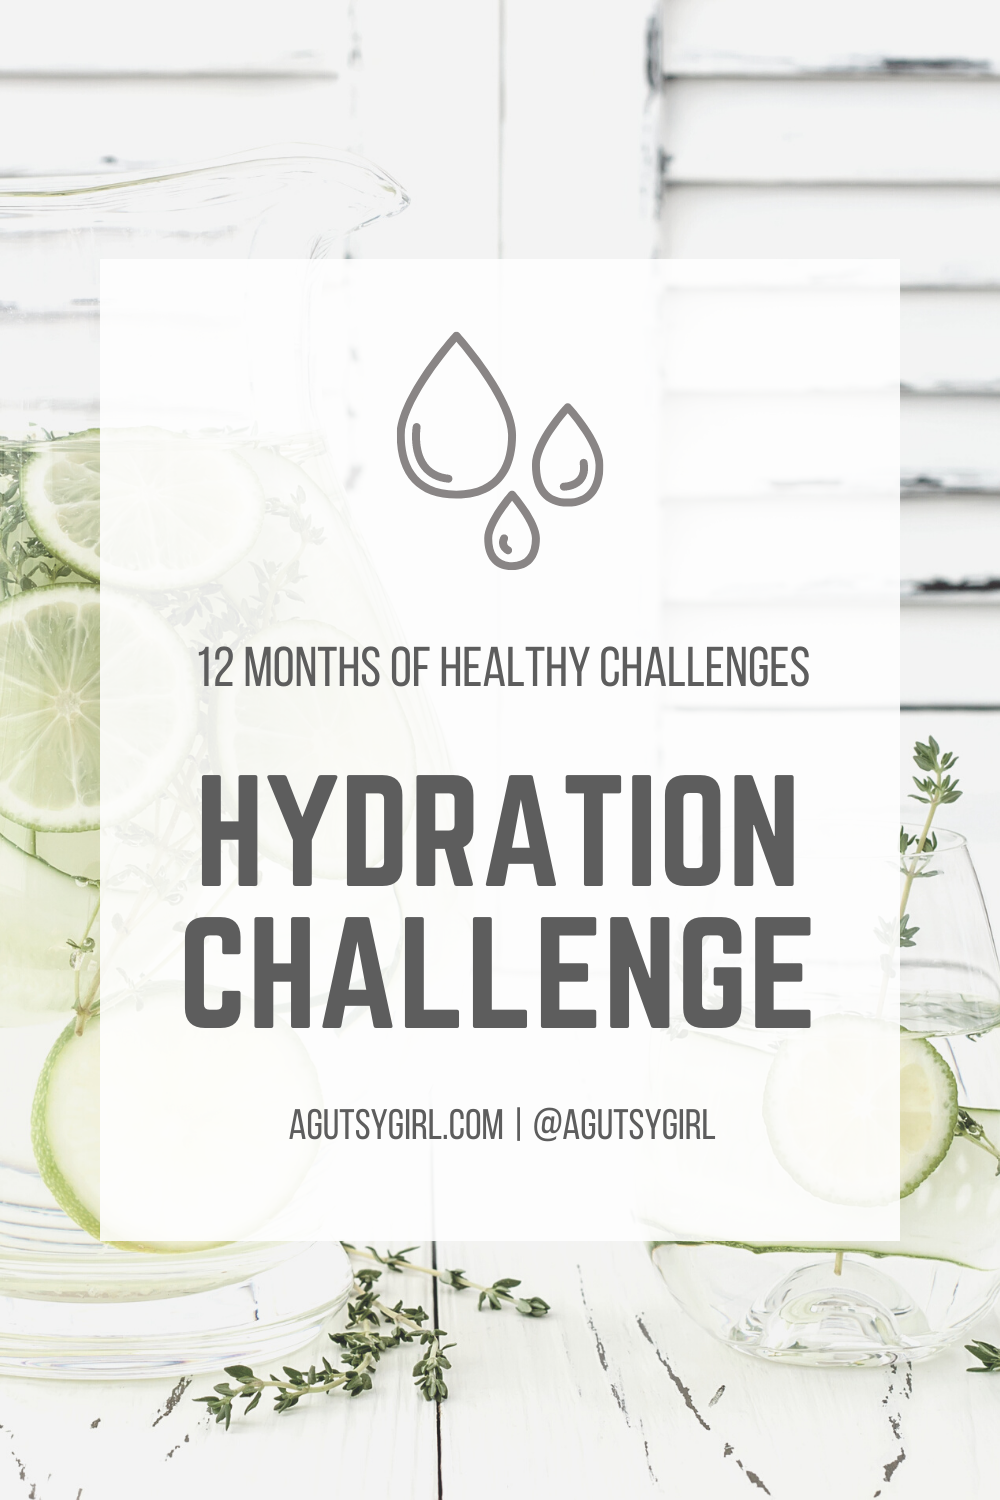 Hydration Definition and hydration challenge agutsygirl.com #hydration #water #healthychallenge